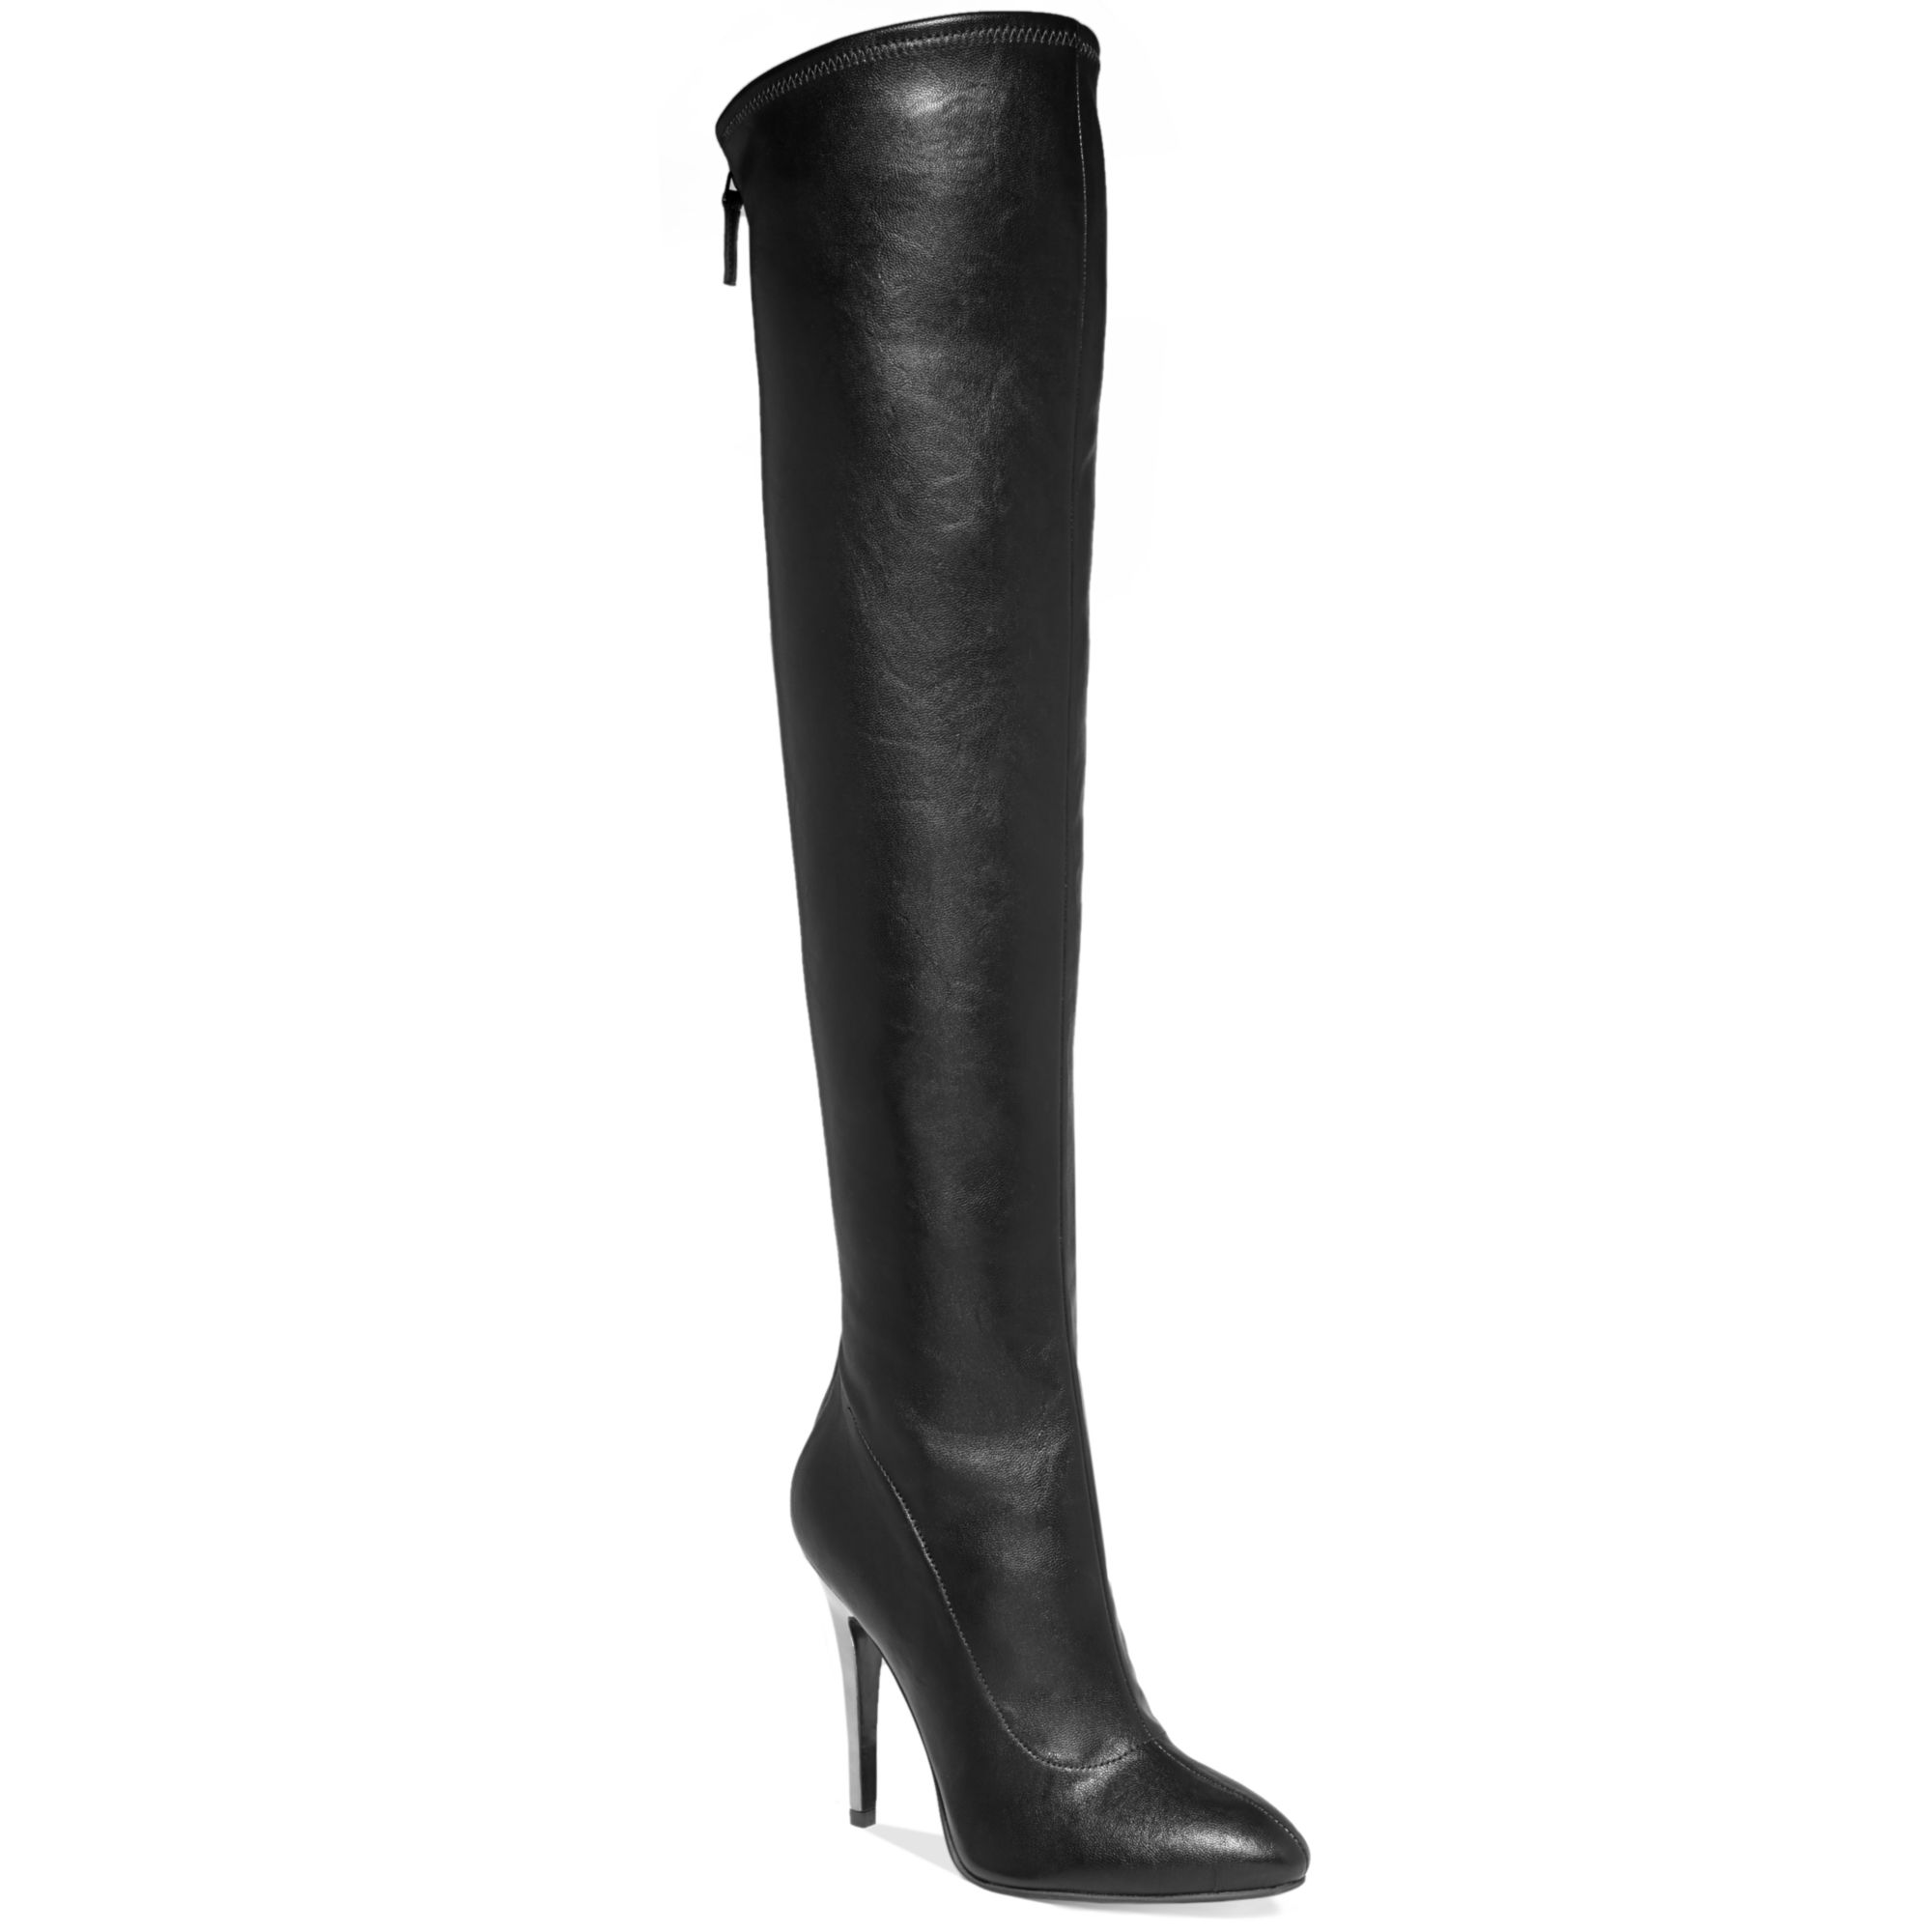 Bodycon dress knee high boots nine west cato